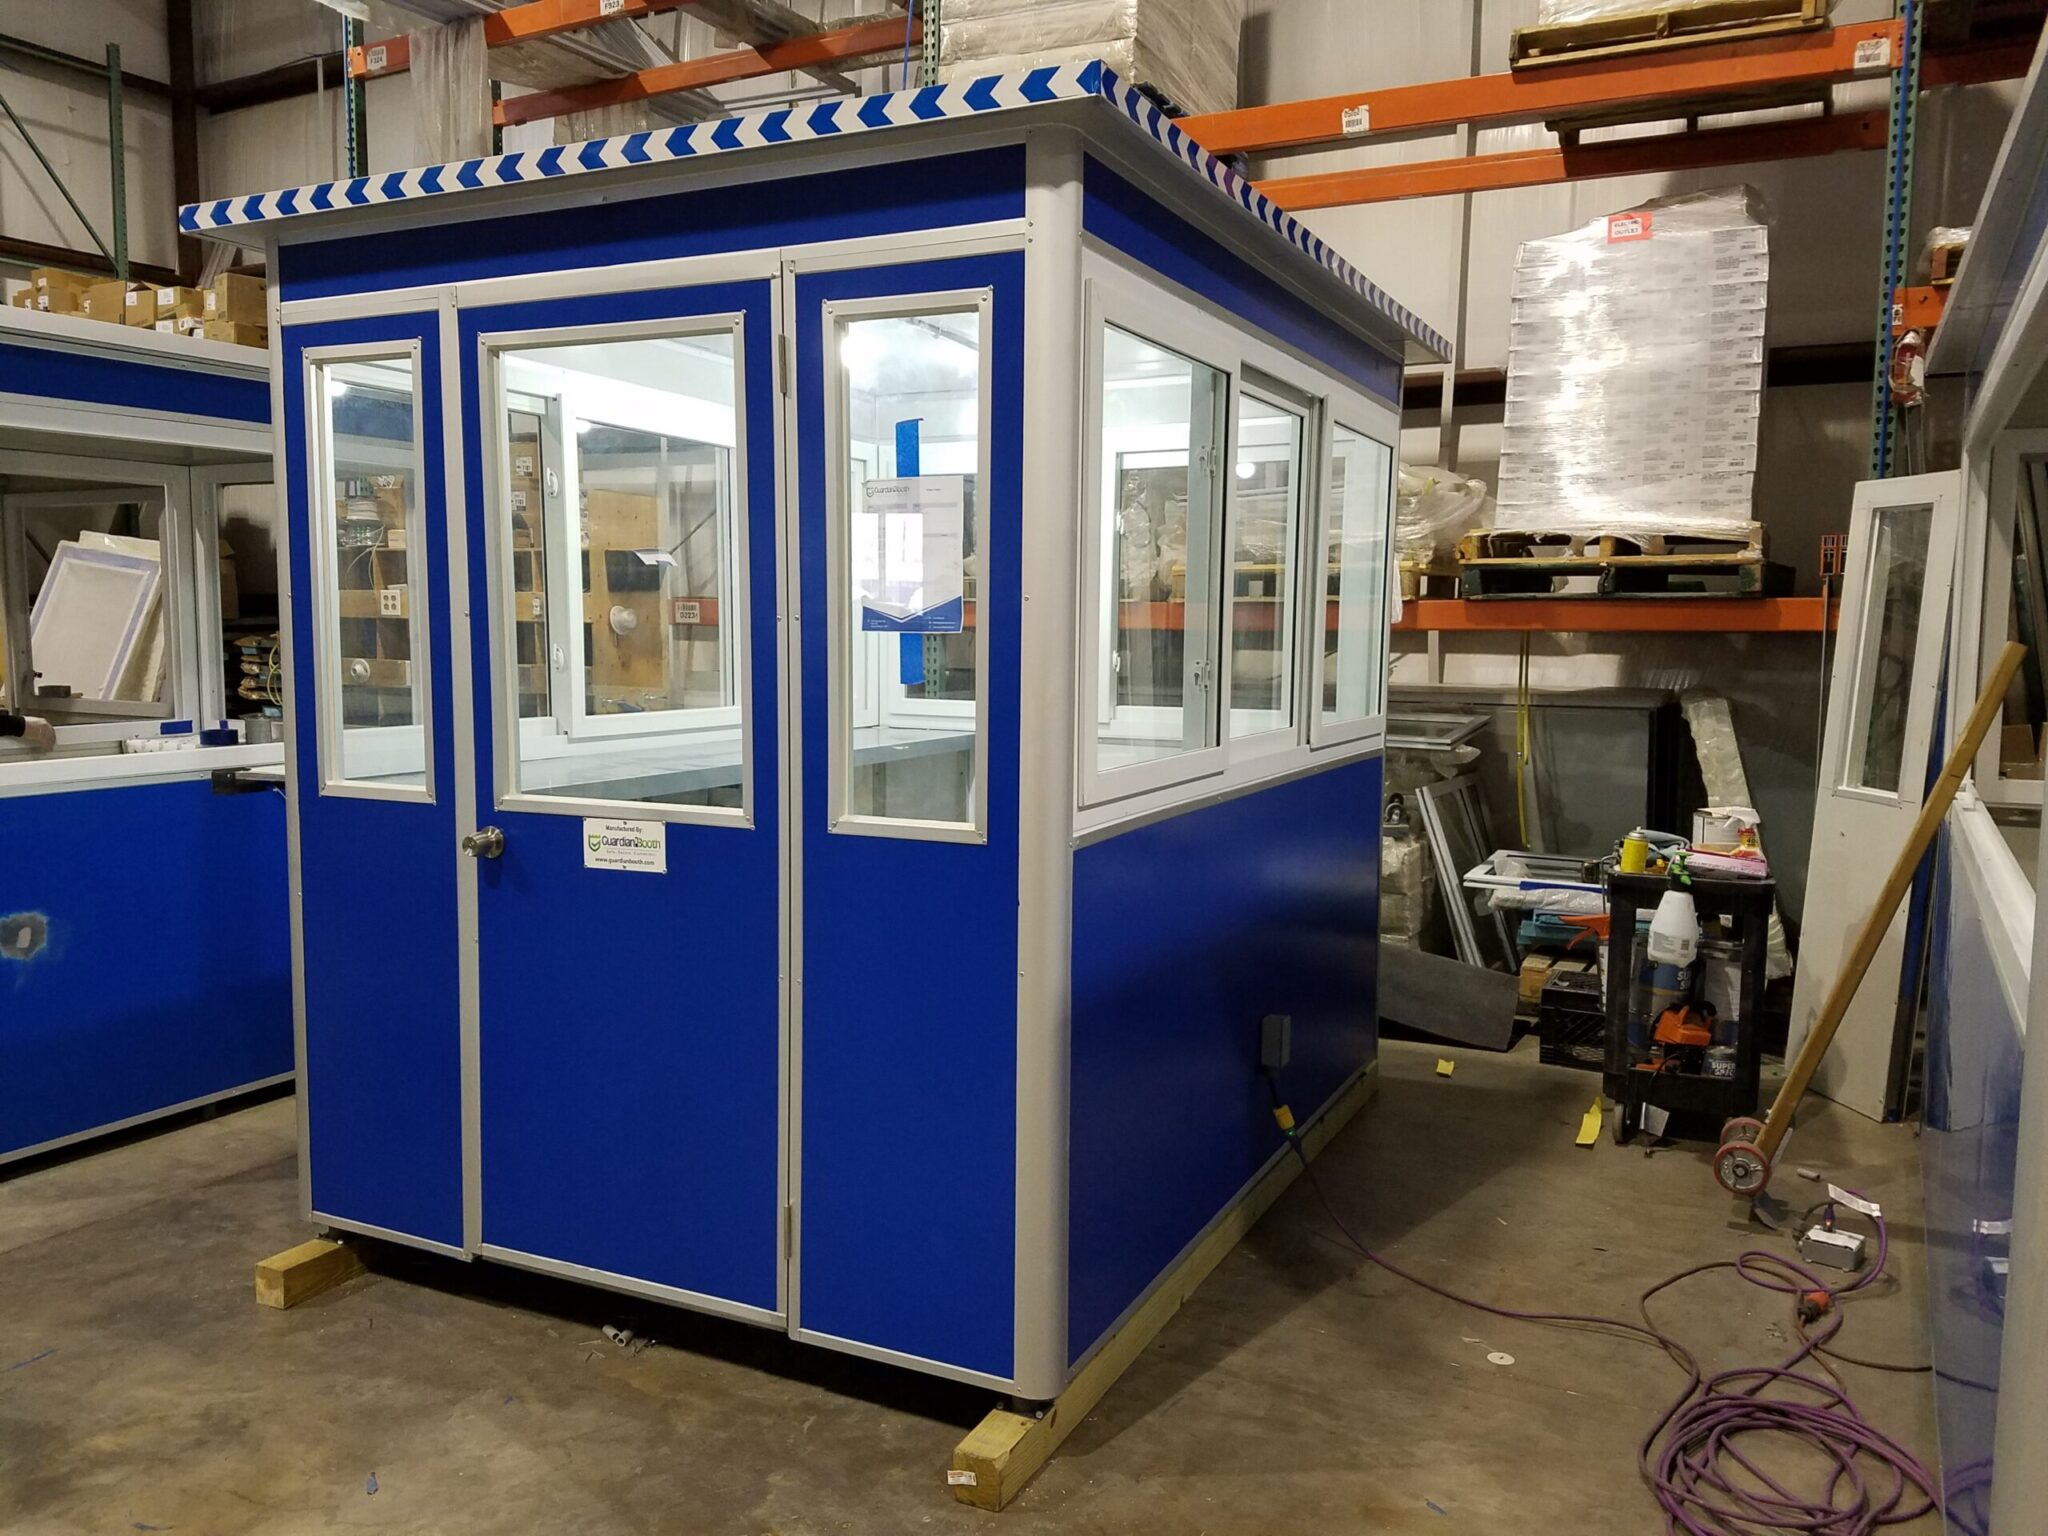 6x8 Ticket Booth in Binghamton, NY with Sliding Windows, Swing Door, and Exterior Electrical Disconnect Switch